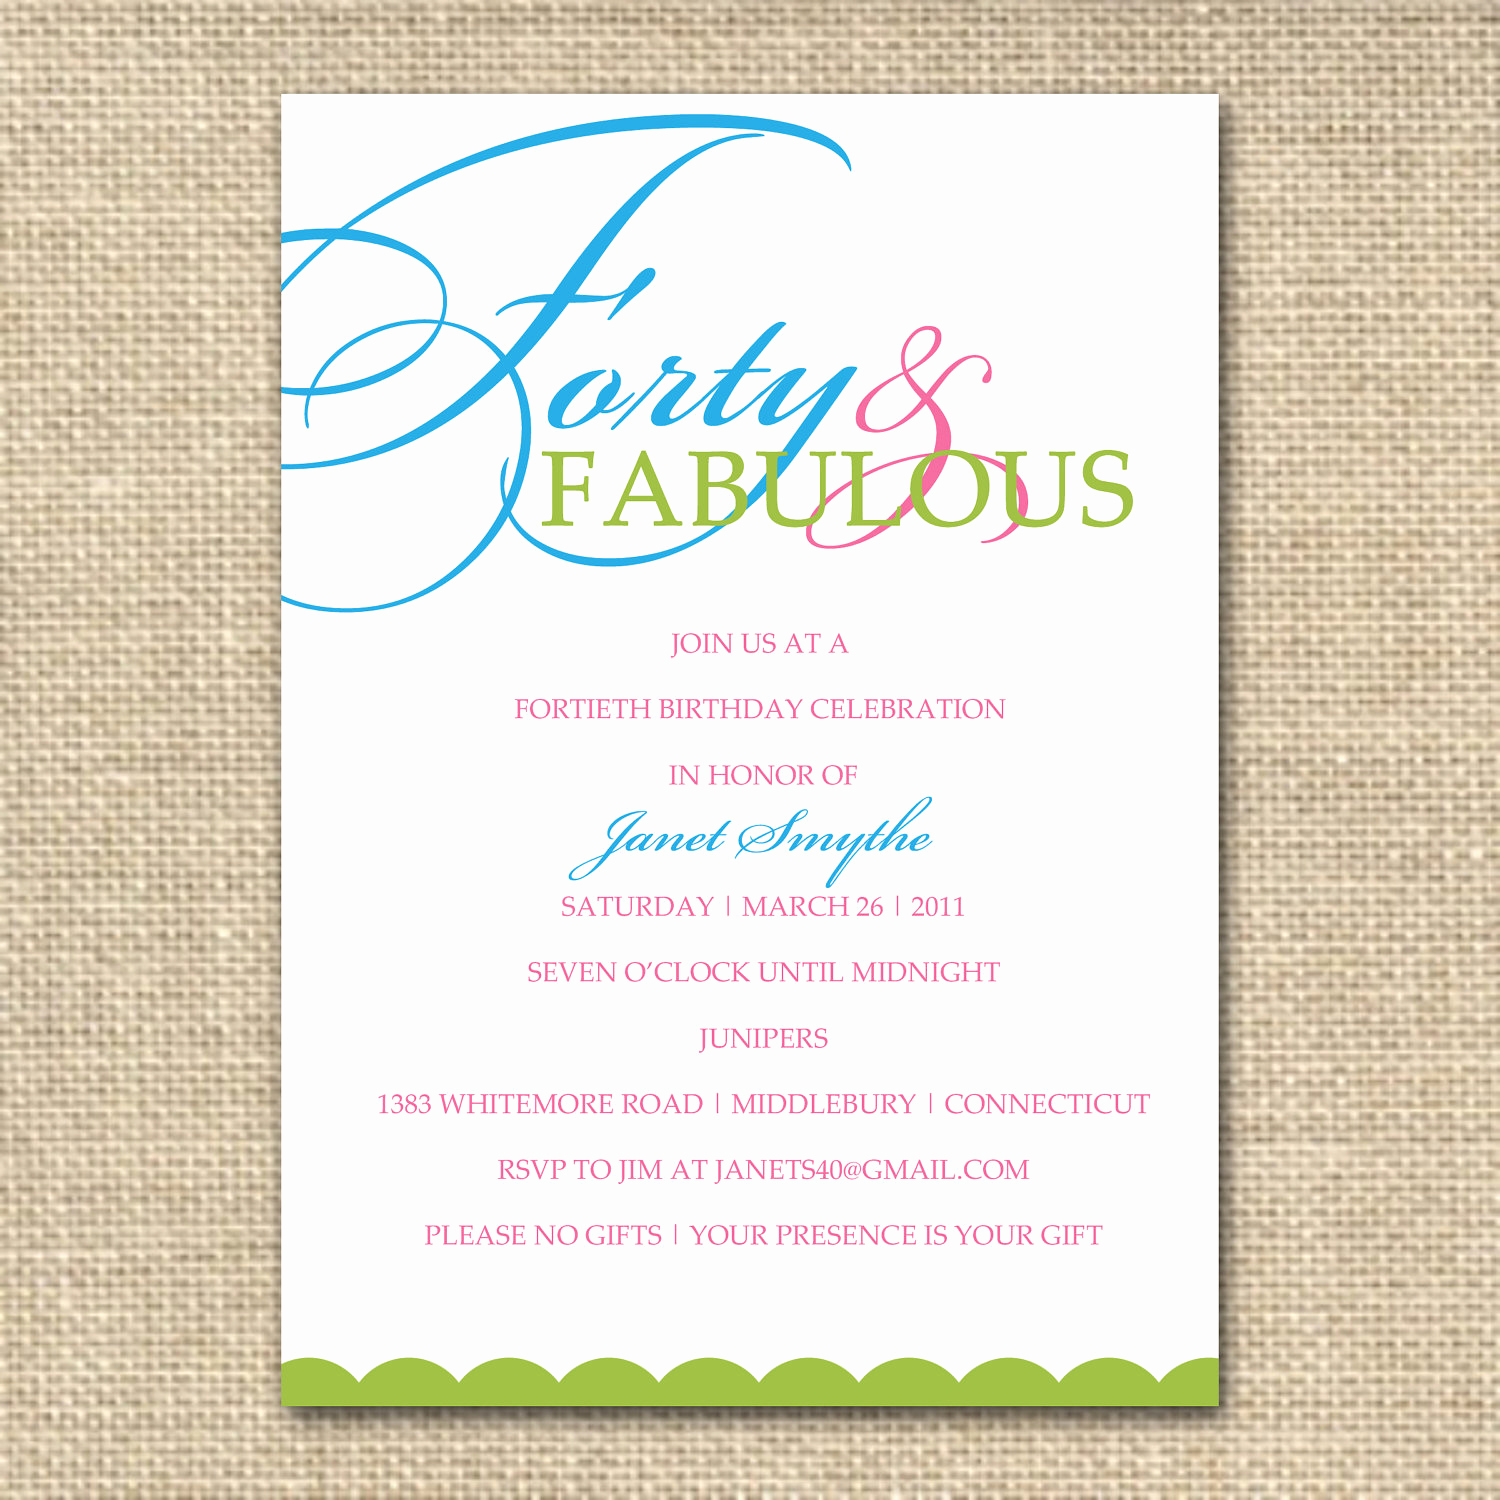 Anniversary Party Invitation Wording Lovely 10 Birthday Invite Wording Decision – Free Wording